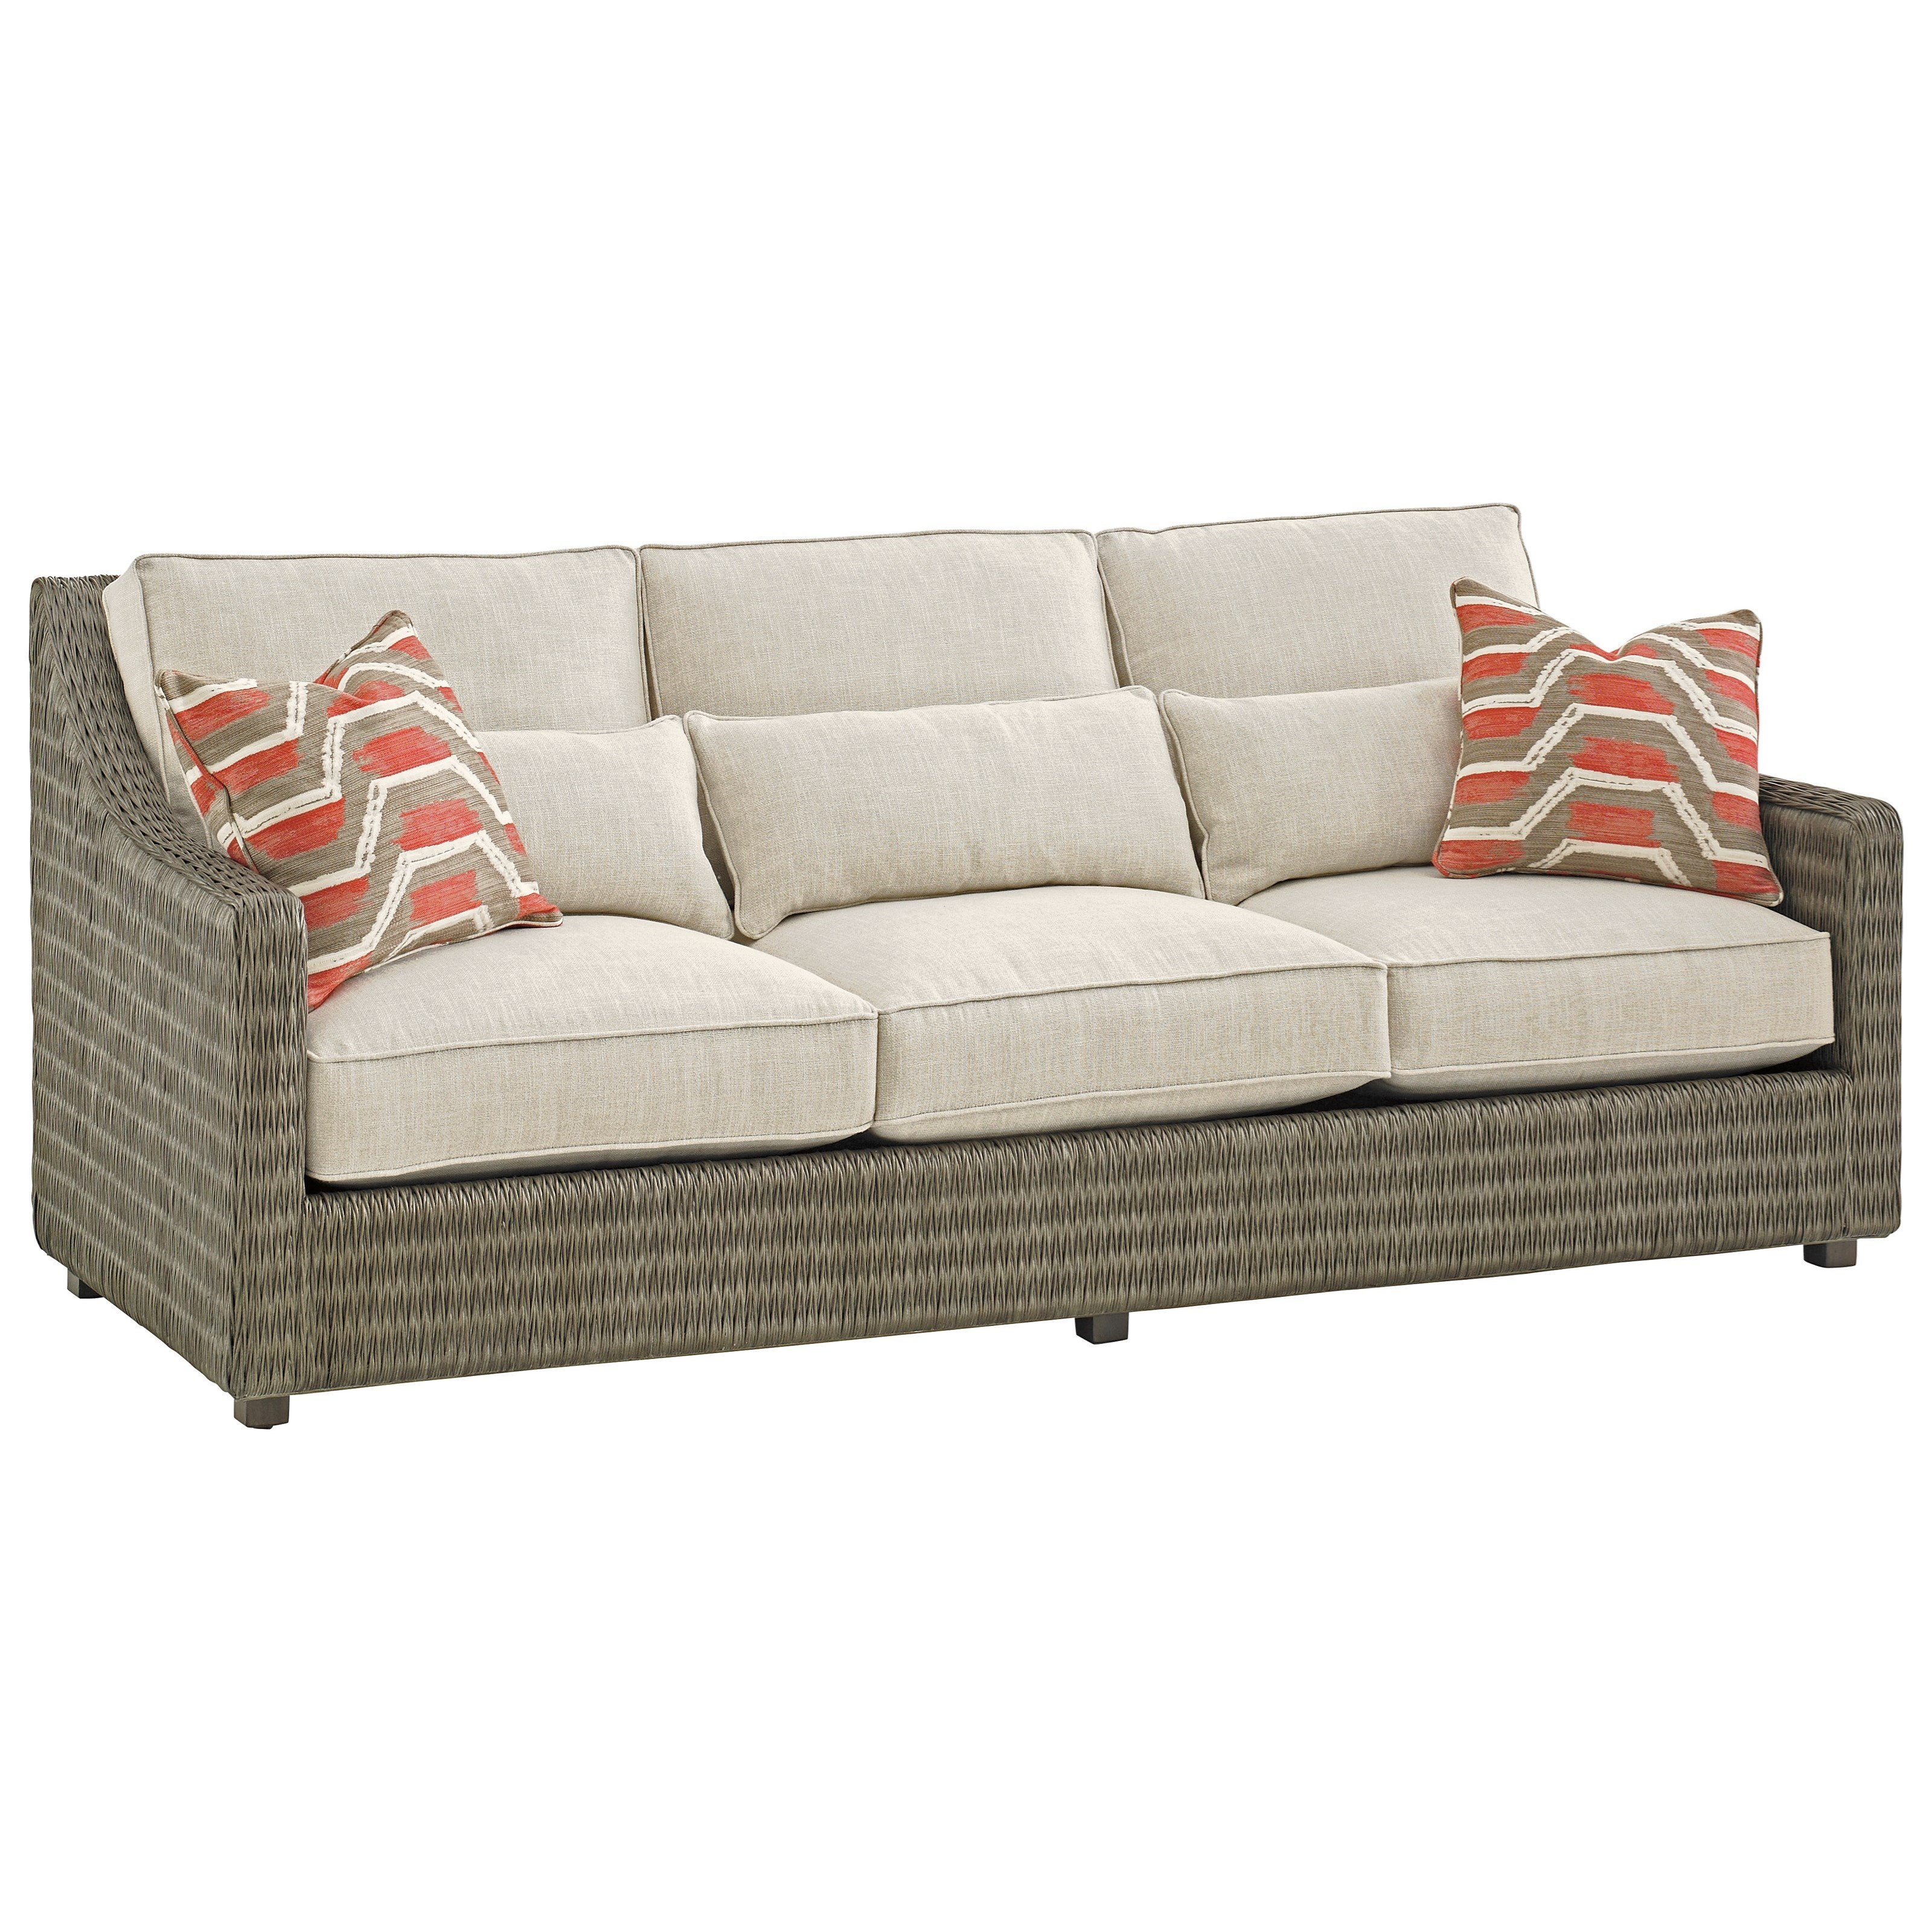 Cypress Point Hayes Sofa by Tommy Bahama Home at Baer's Furniture